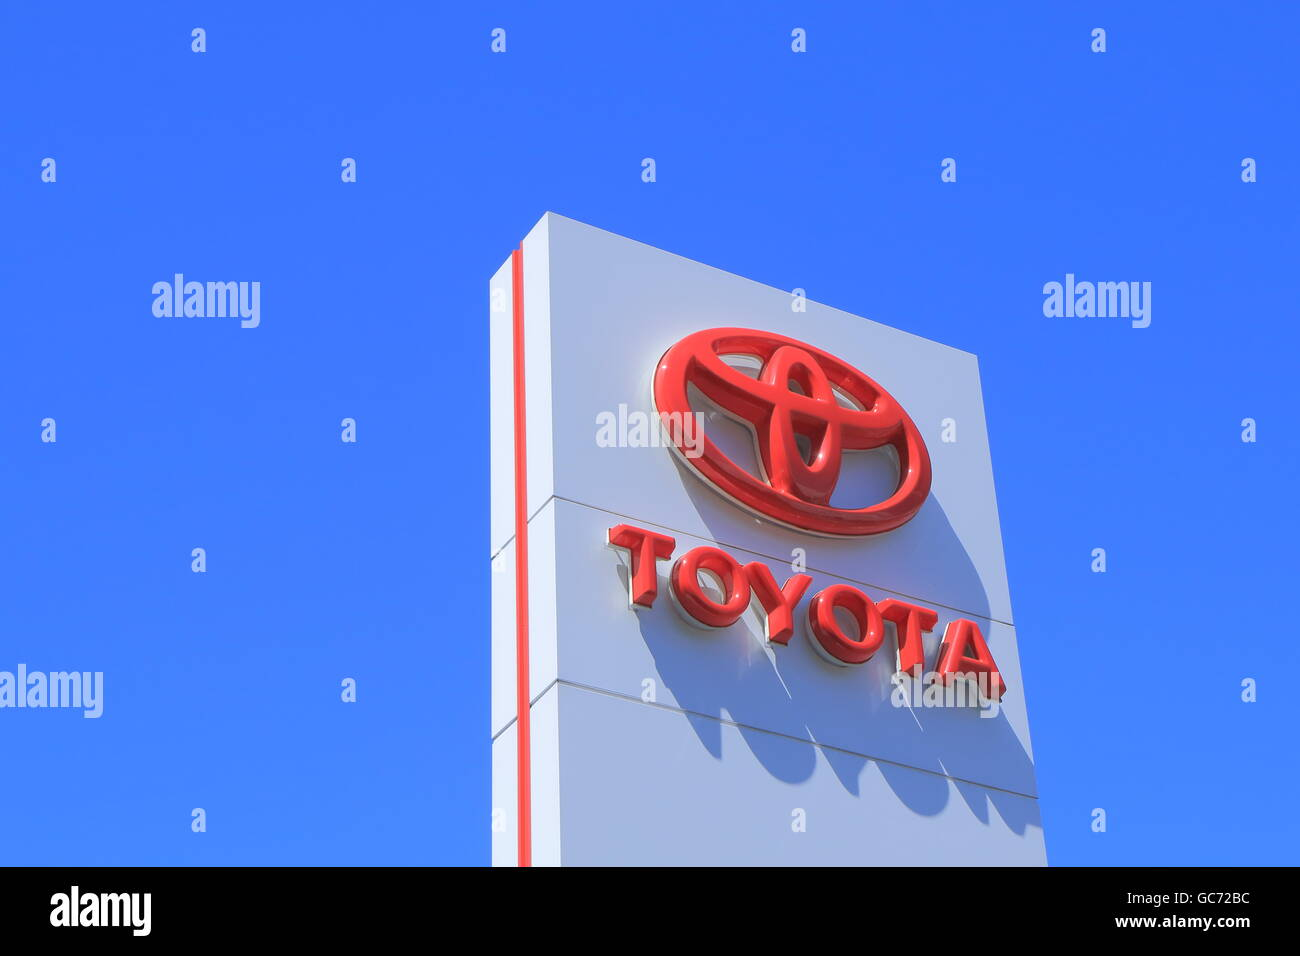 Toyota Japanese car manufacture company logo Stock Photo